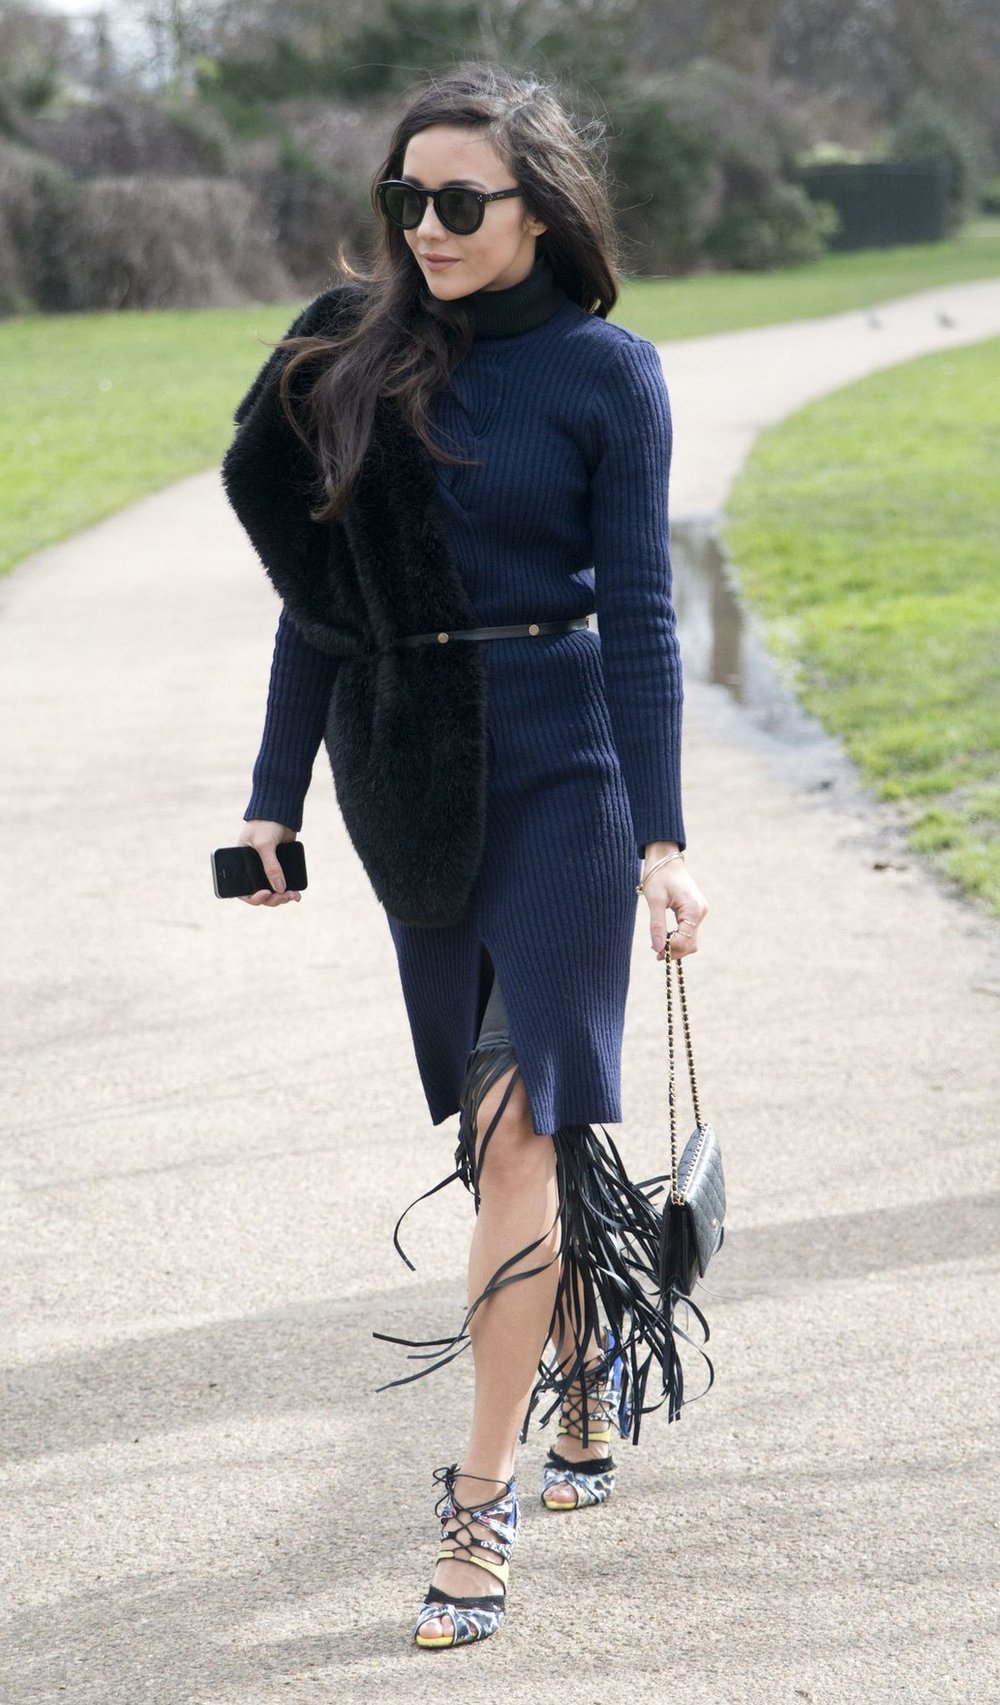 blue-navy-dress-sweater-skinny-belt-brun-sun-black-scarf-stole-black-bag-fall-winter-thanksgiving-outfits-holidays-dinner.jpg